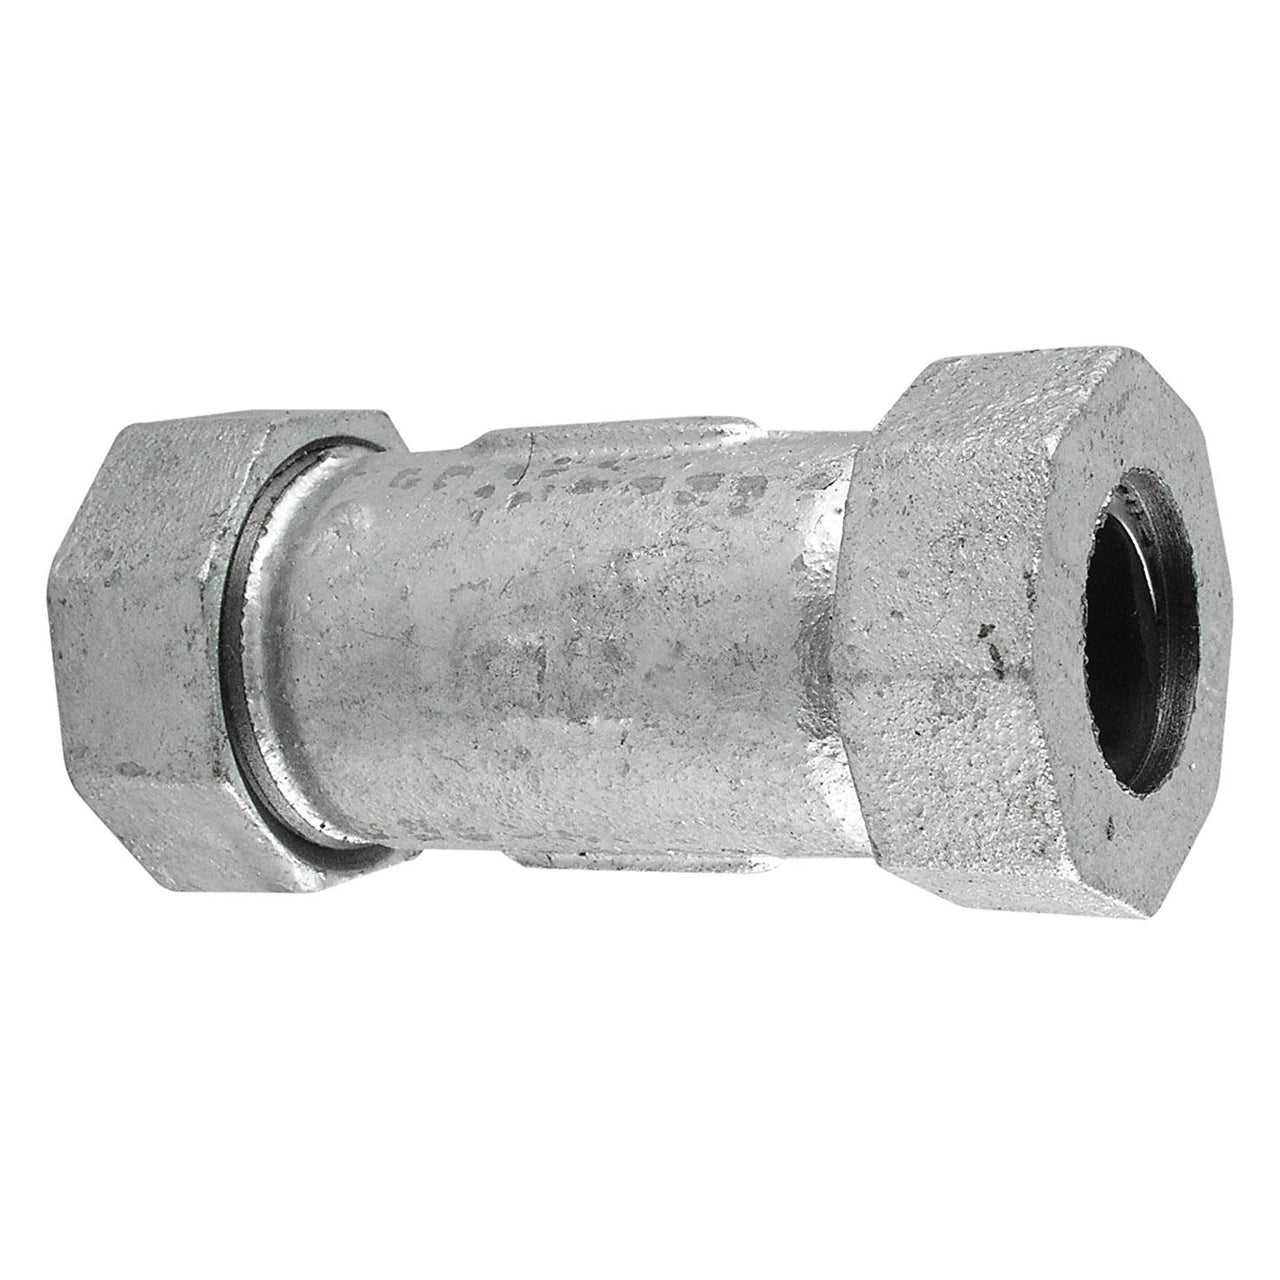 B&K 160-003HP Galvanized Pipe Repair Compression Coupling, 1/2""